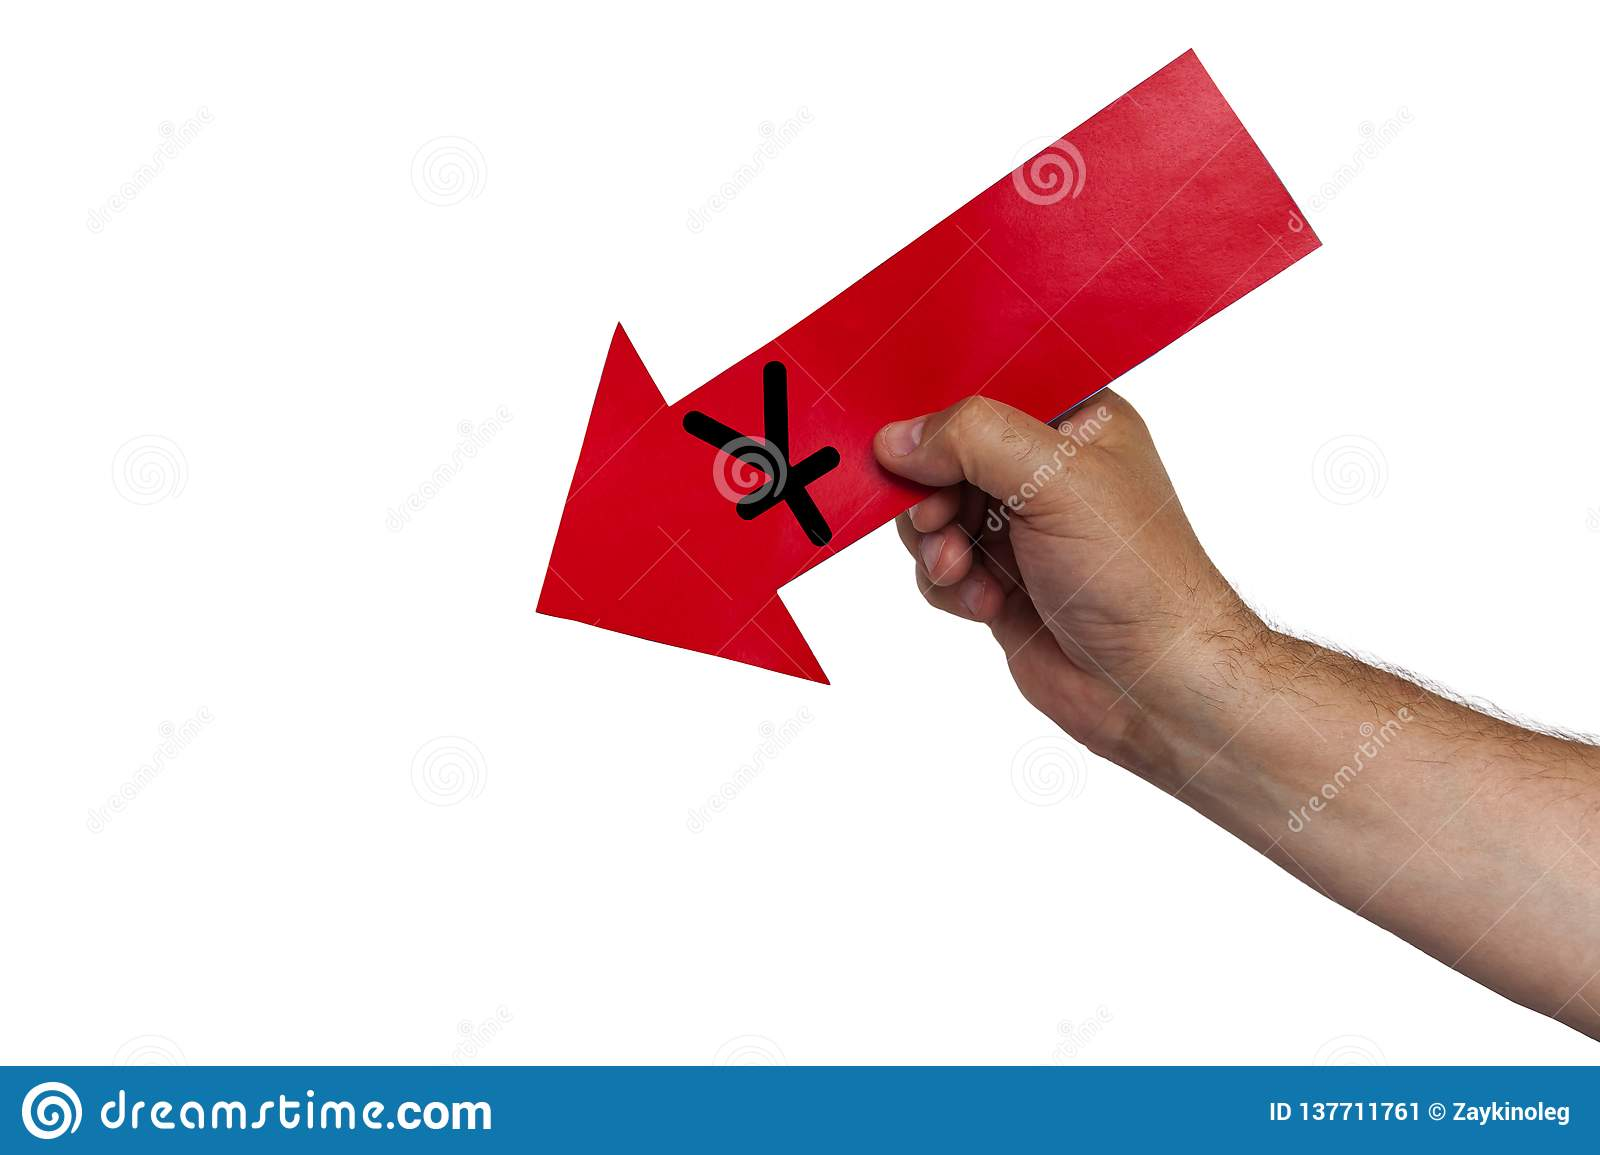 A hand holds an arrow that points down. The arrow has a Yuan sign